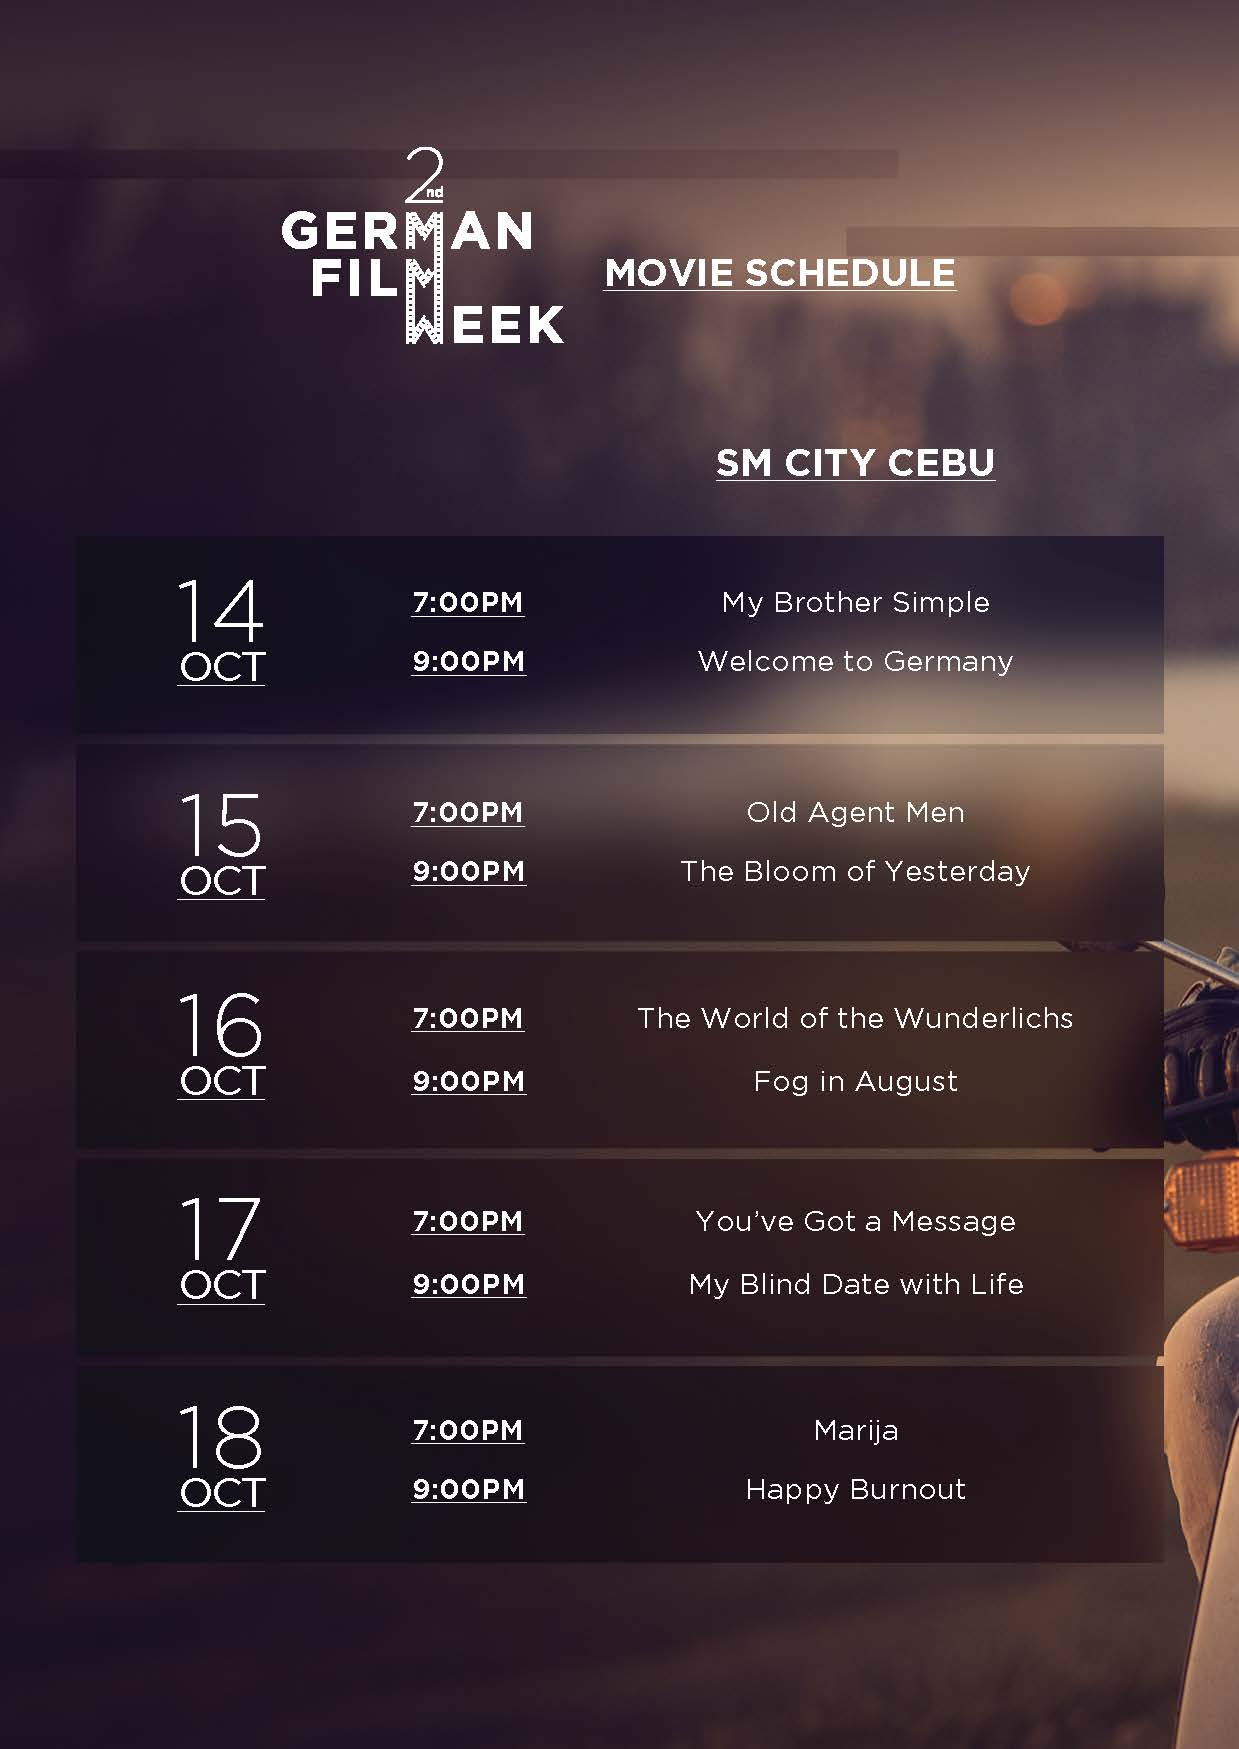 German Film Week Schedule Cebu